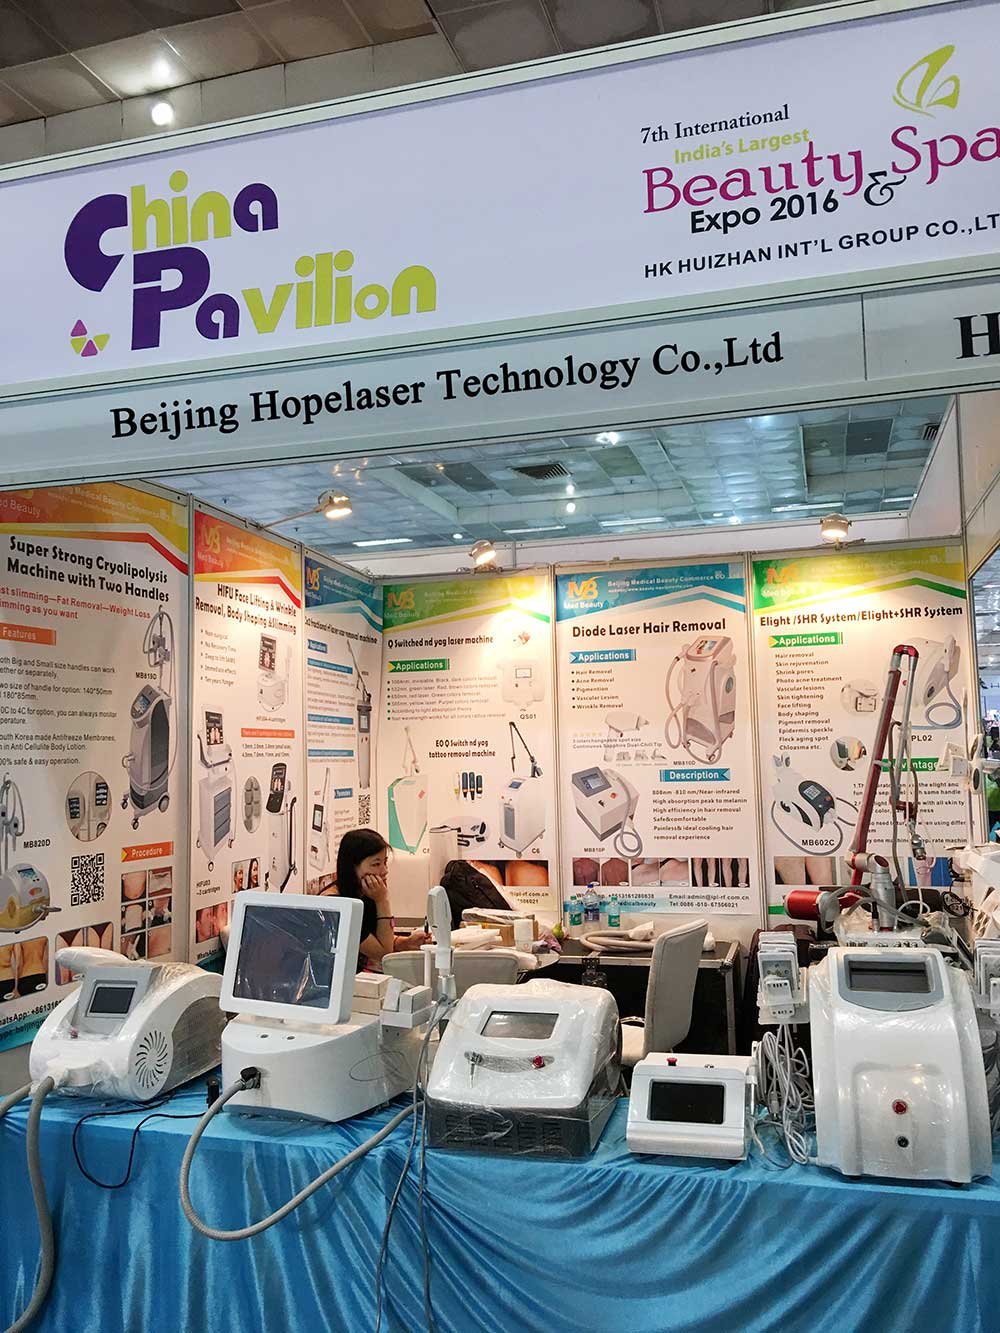 7th international india's largest beauty spa expo 2016